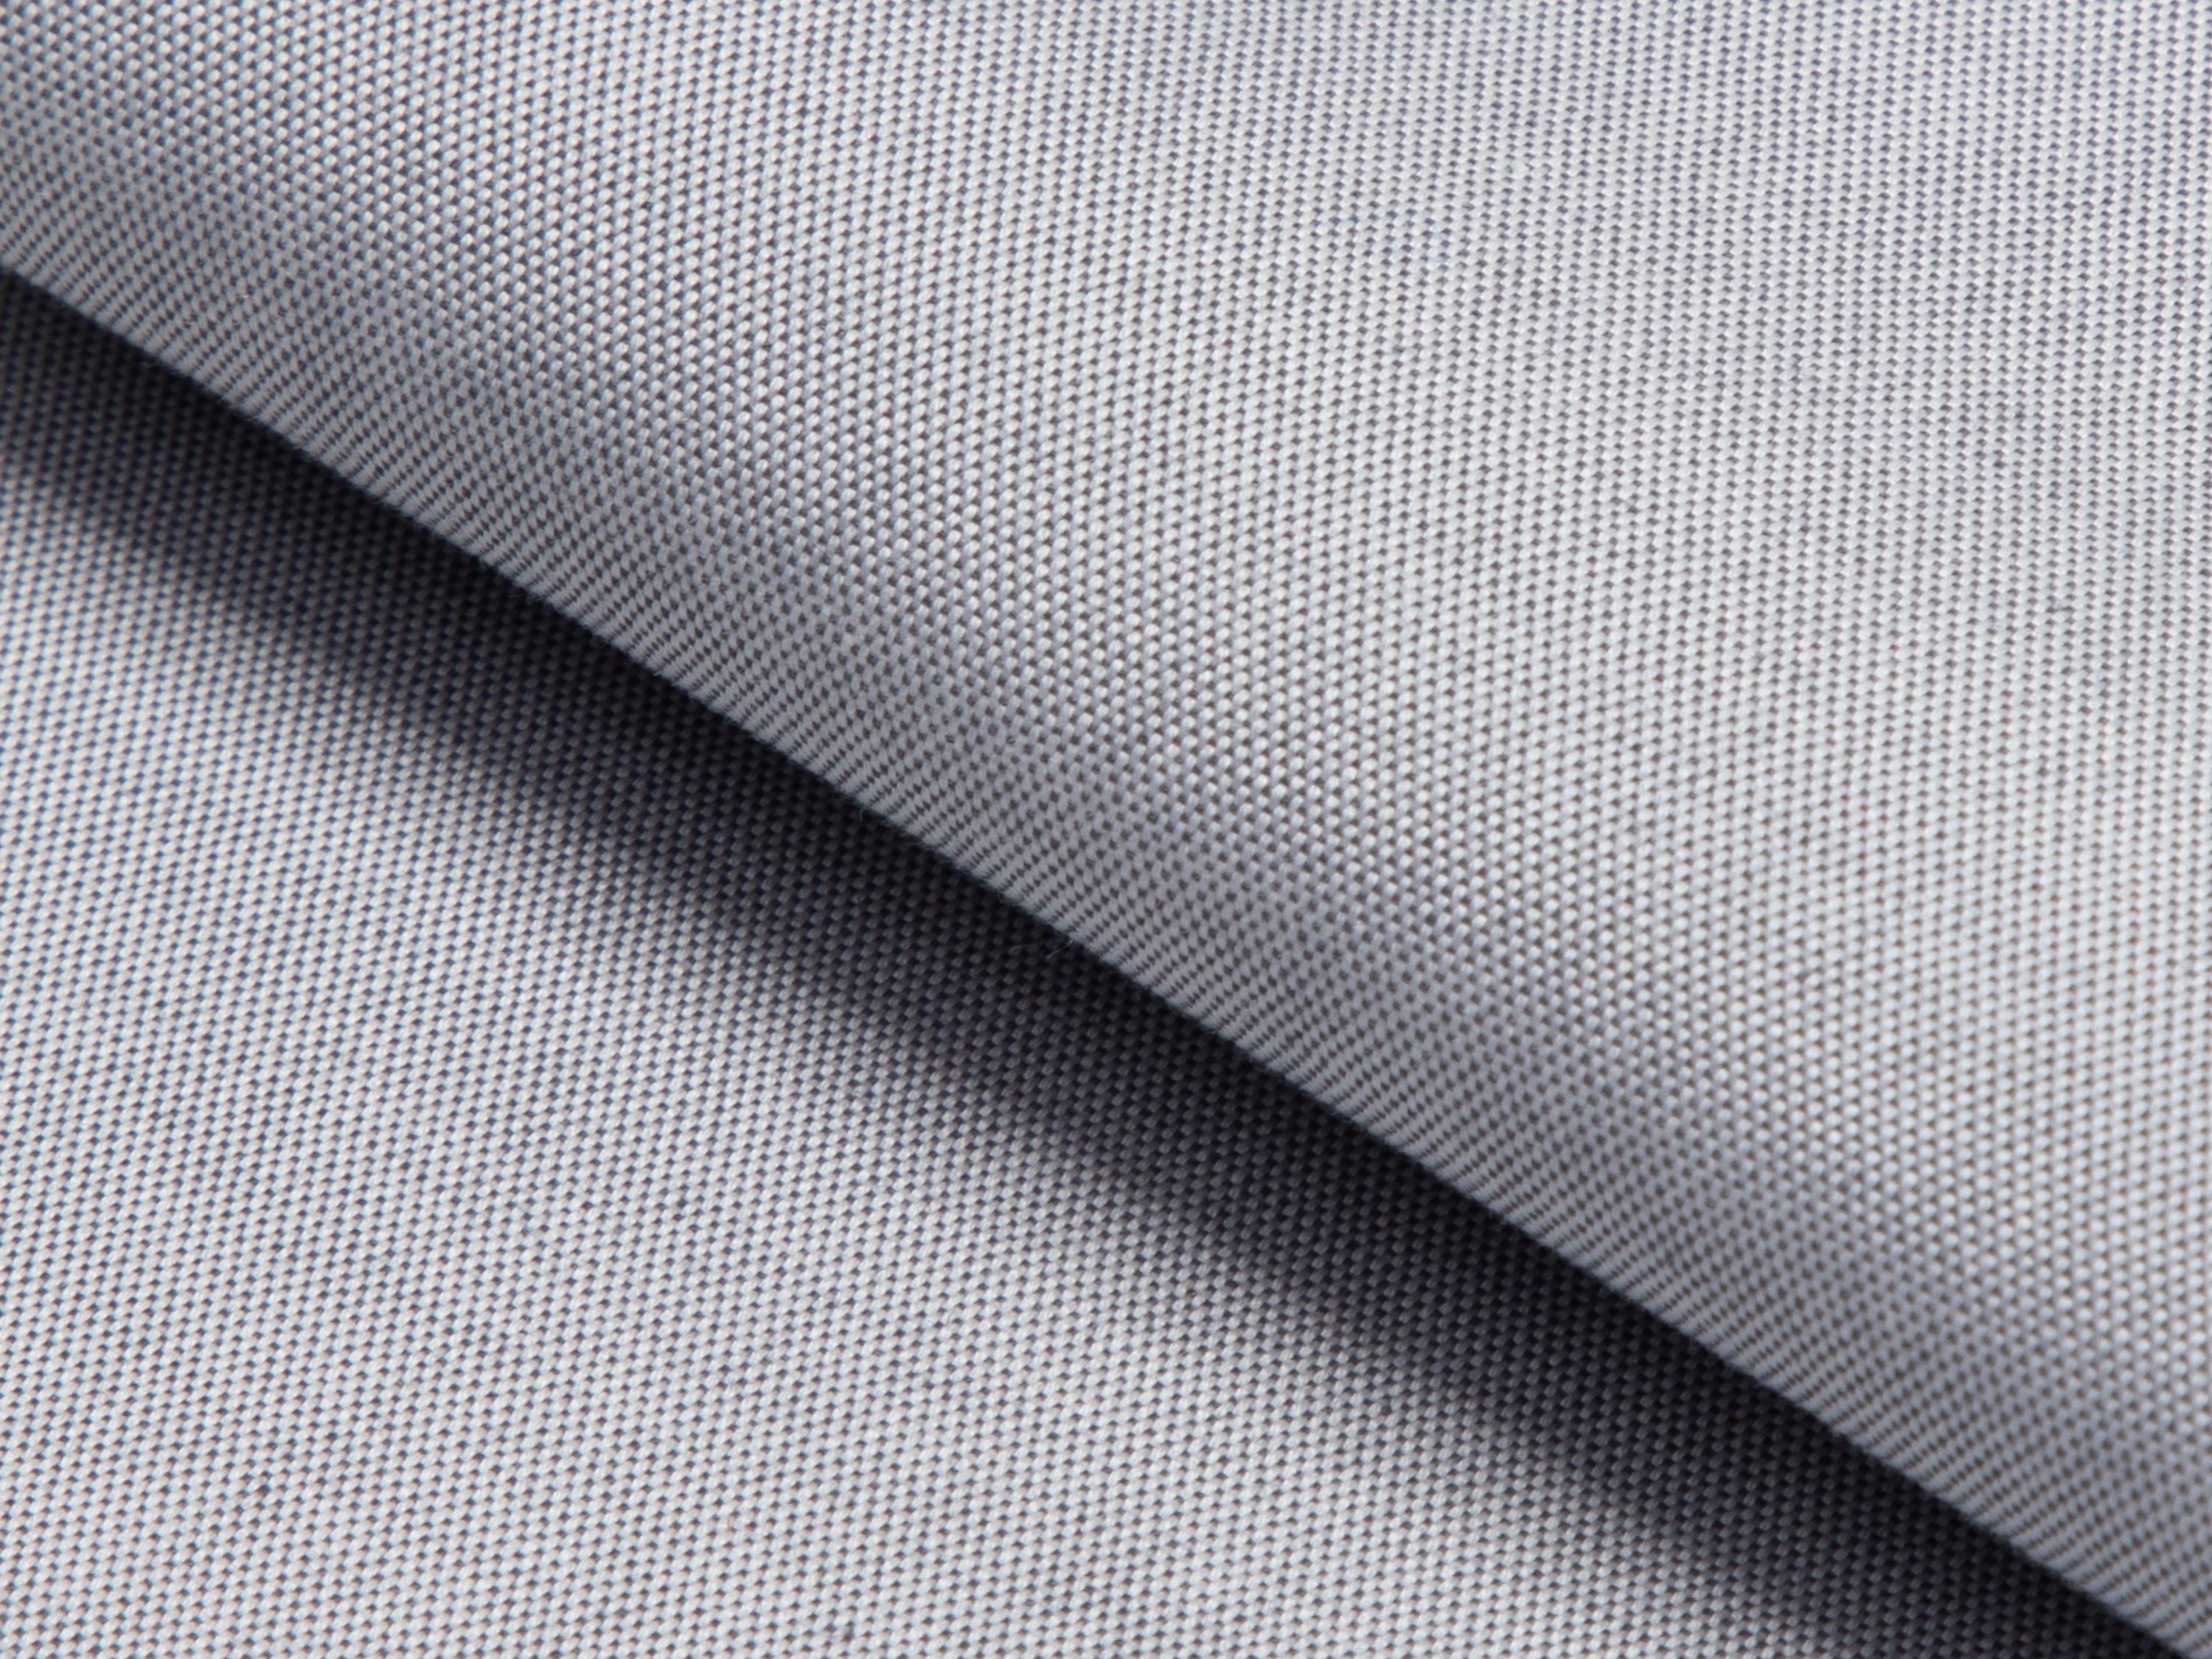 Buy tailor made shirts online - PINPOINT LUXURY (NEW) - Pinpoint Silver Grey